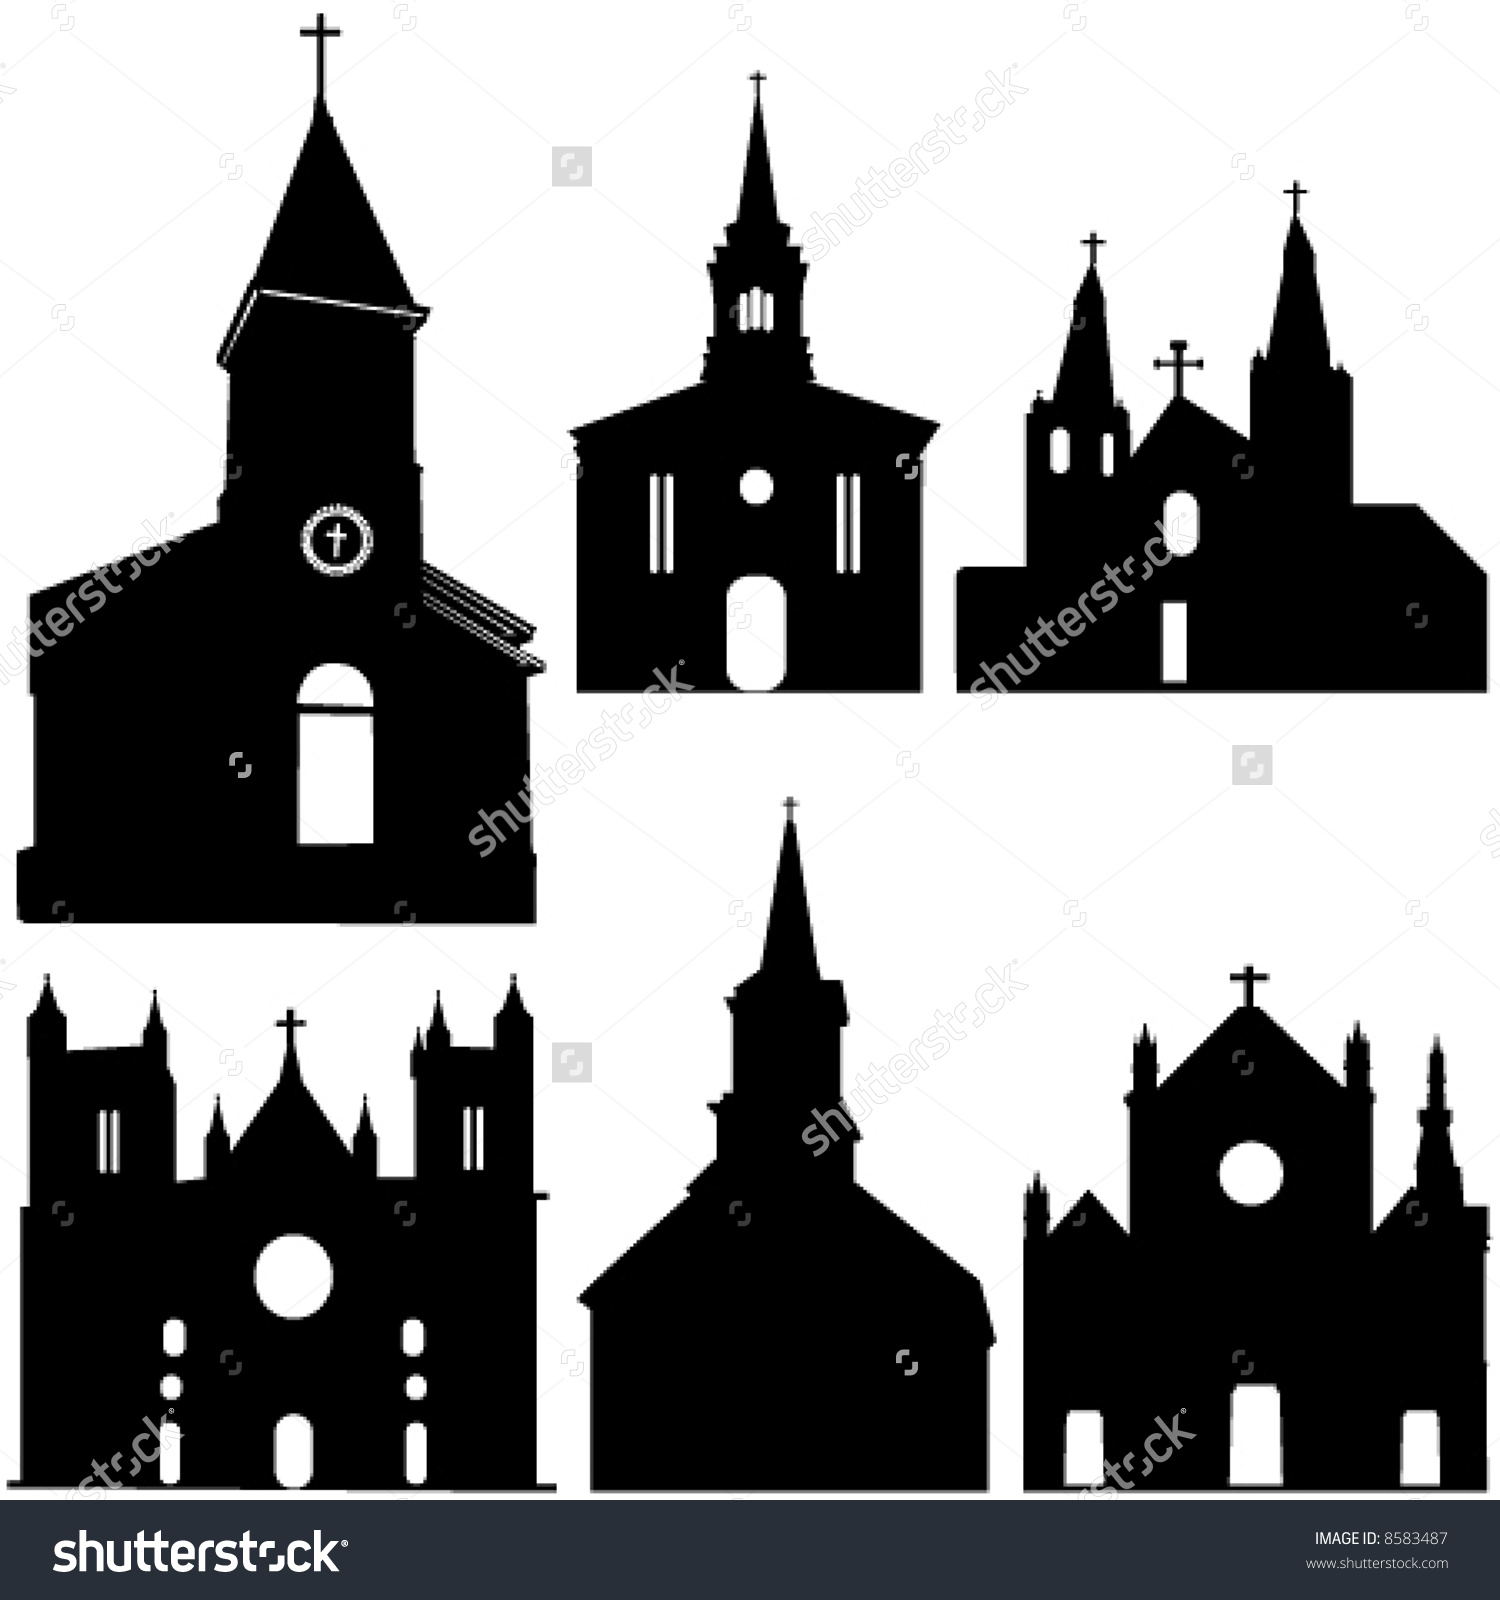 Silhouette castle and church clipart #15